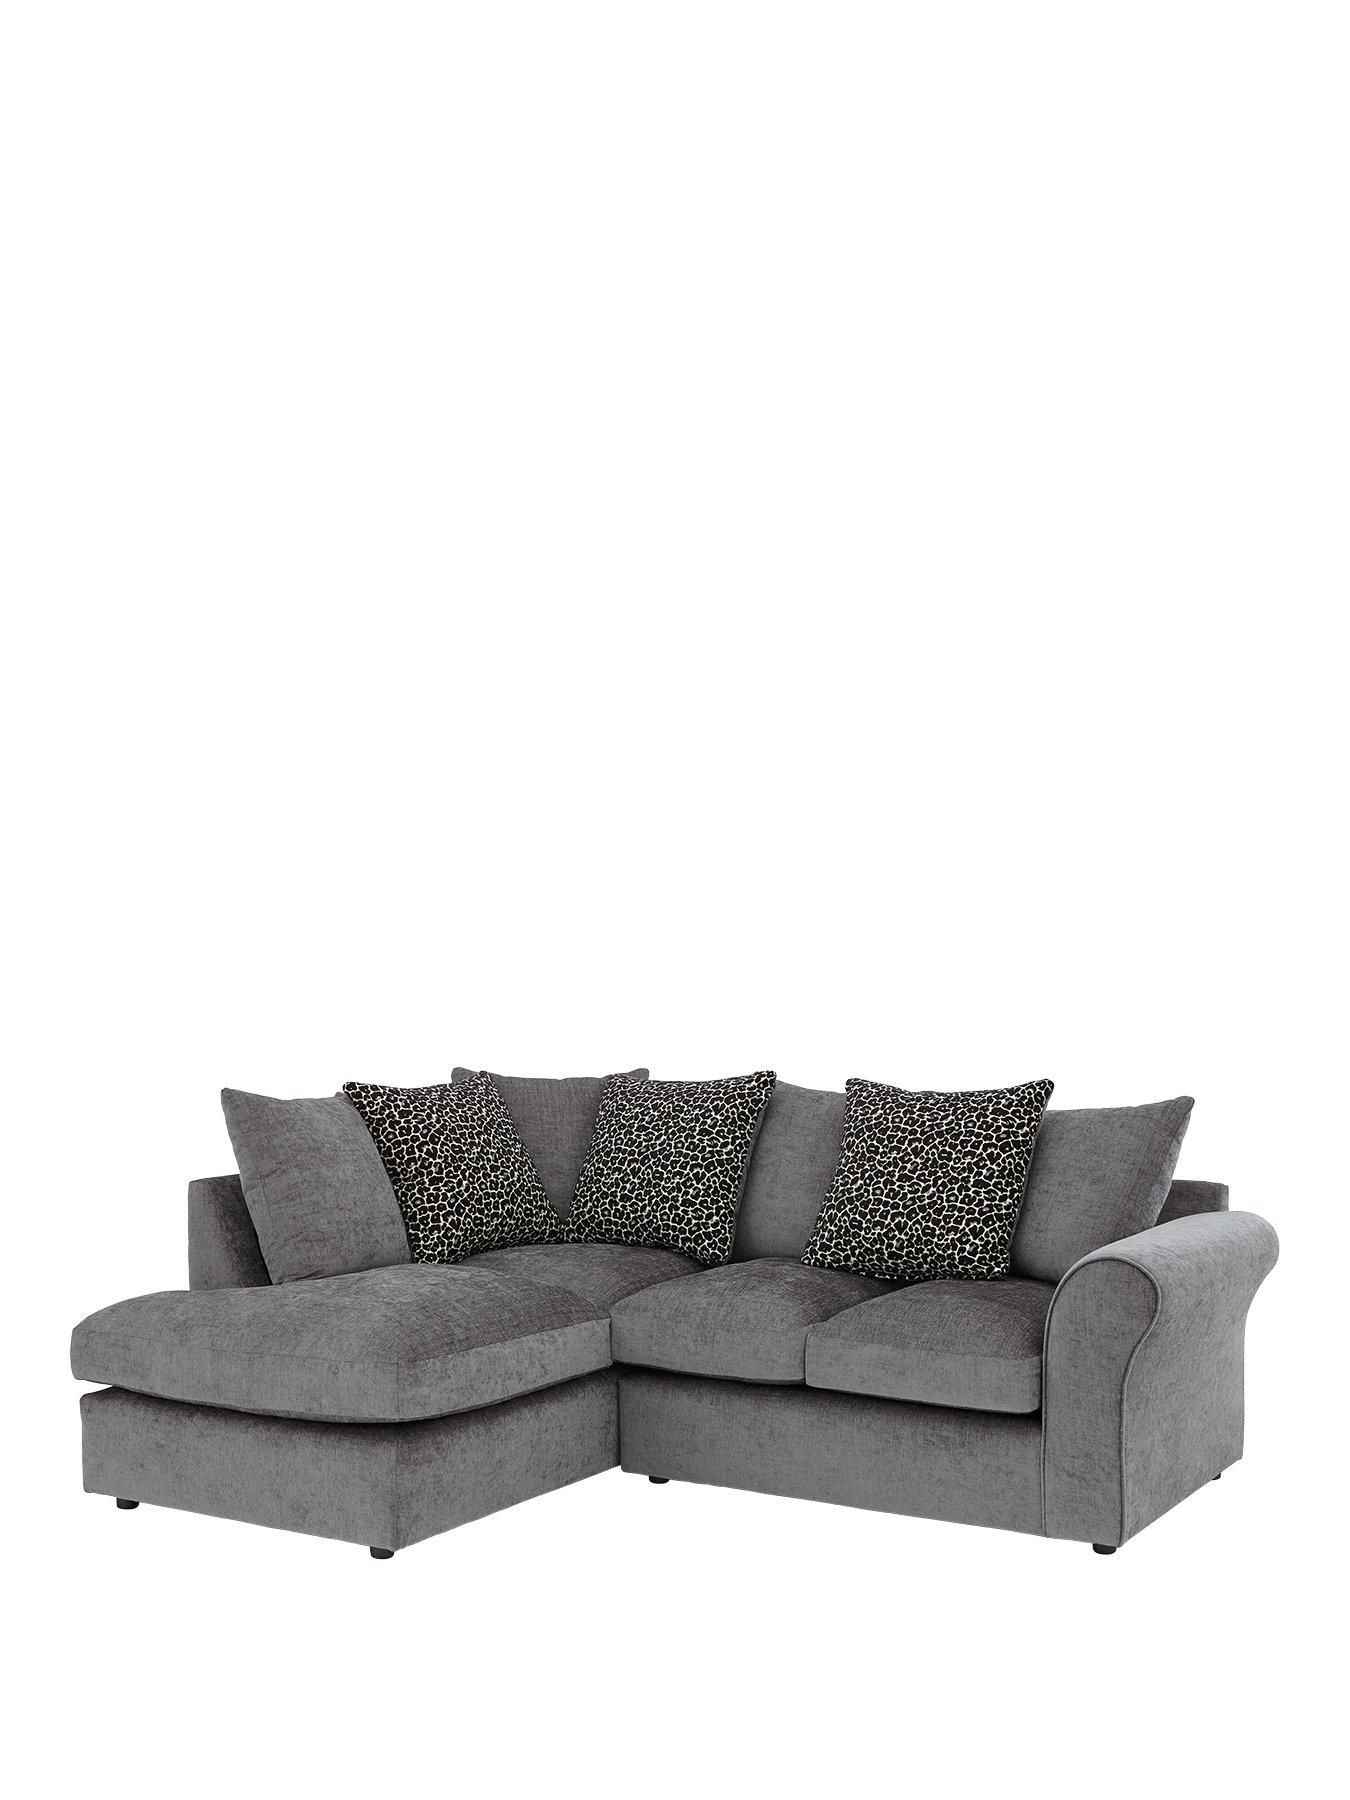 Sofa Pads Uk Minotti Outlet Womens Mens And Kids Fashion Furniture Electricals More House Nala Left Hand Fabric Corner Chaise Very Co